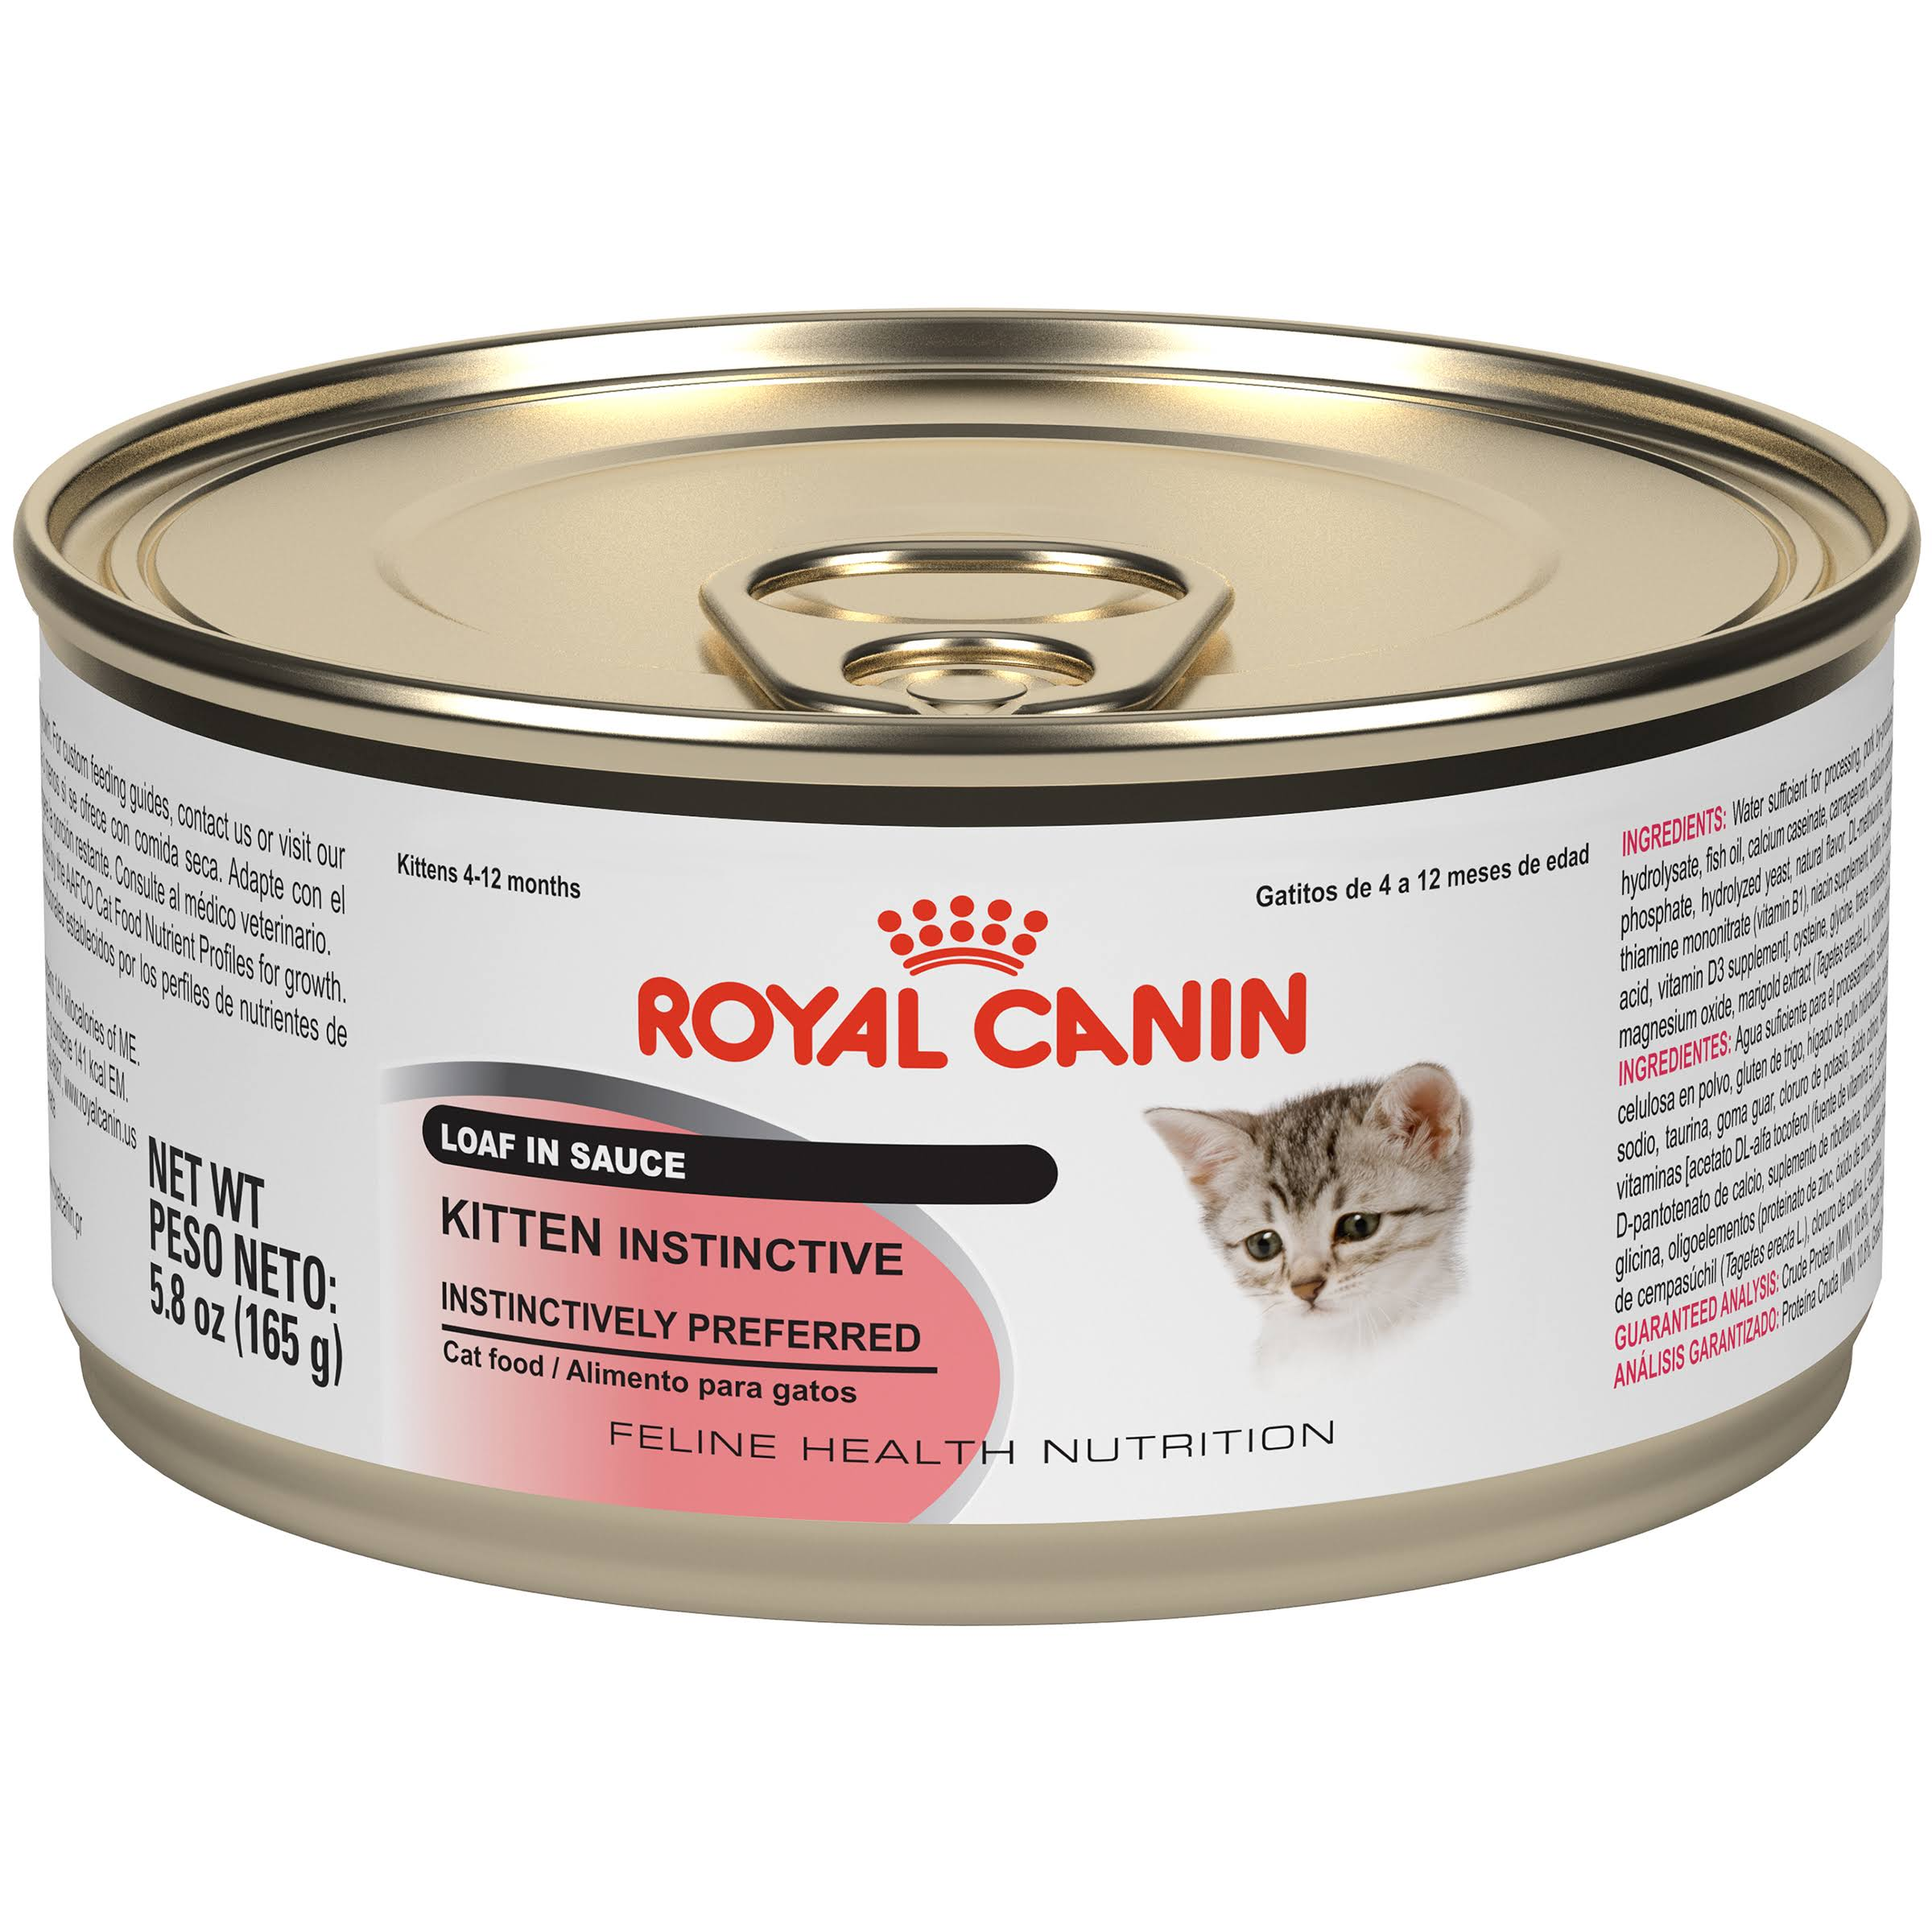 Royal Canin Feline Health Nutrition Kitten Instinctive Loaf in Sauce Canned Cat